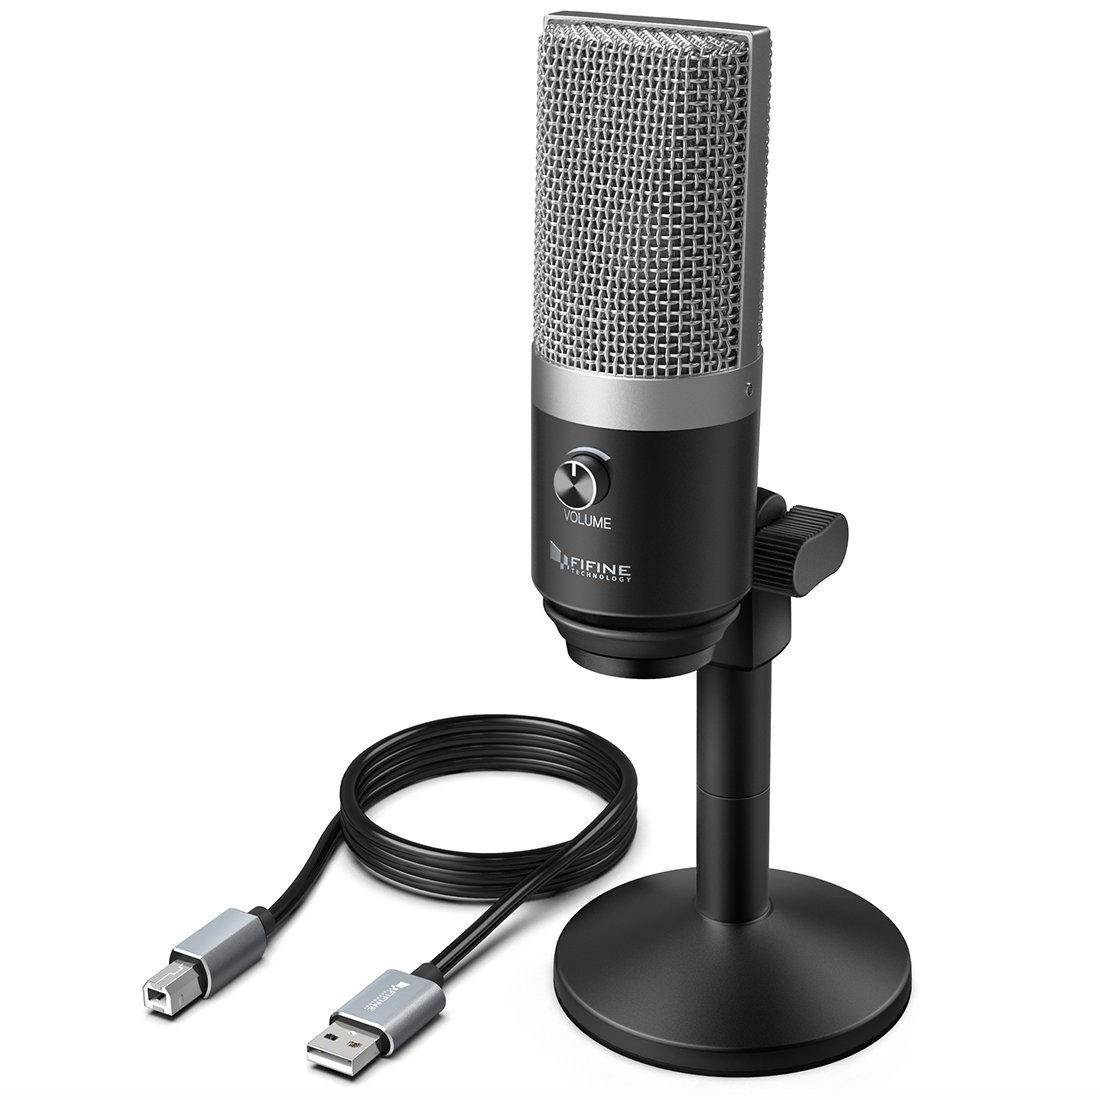 Microphone for the computer with their own hands 97